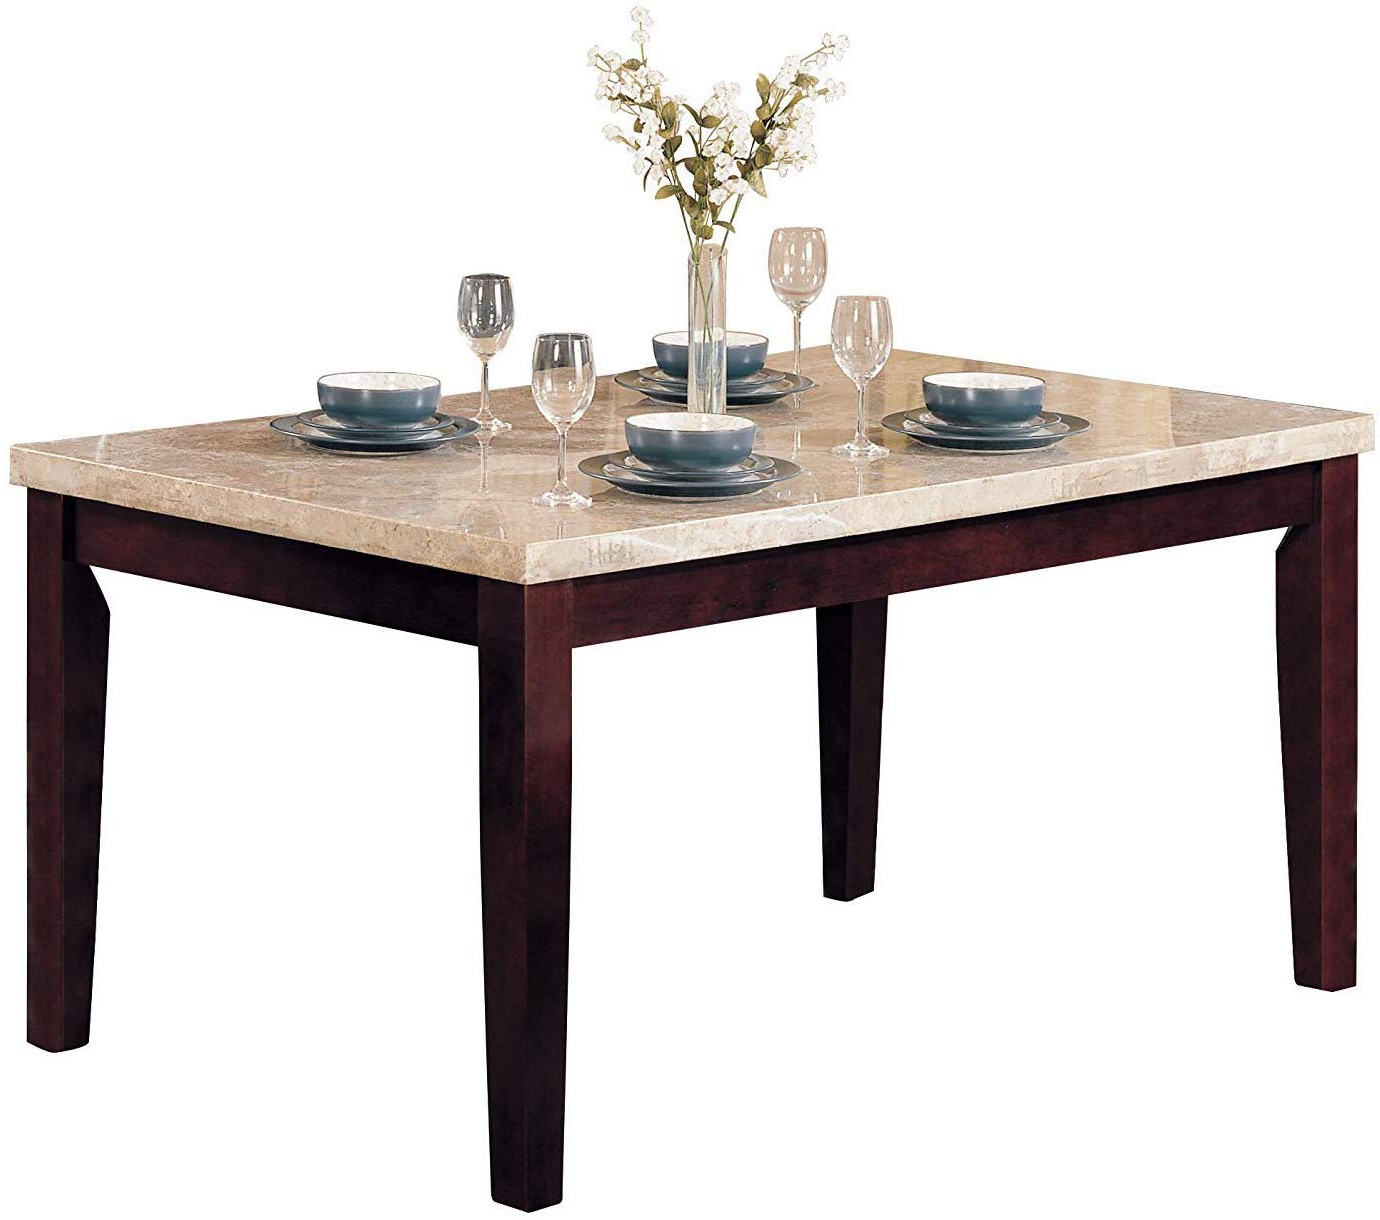 Acme Britney Walnut Dining Table With White Marble Top Inside 2020 Distressed Walnut And Black Finish Wood Modern Country Dining Tables (View 18 of 25)